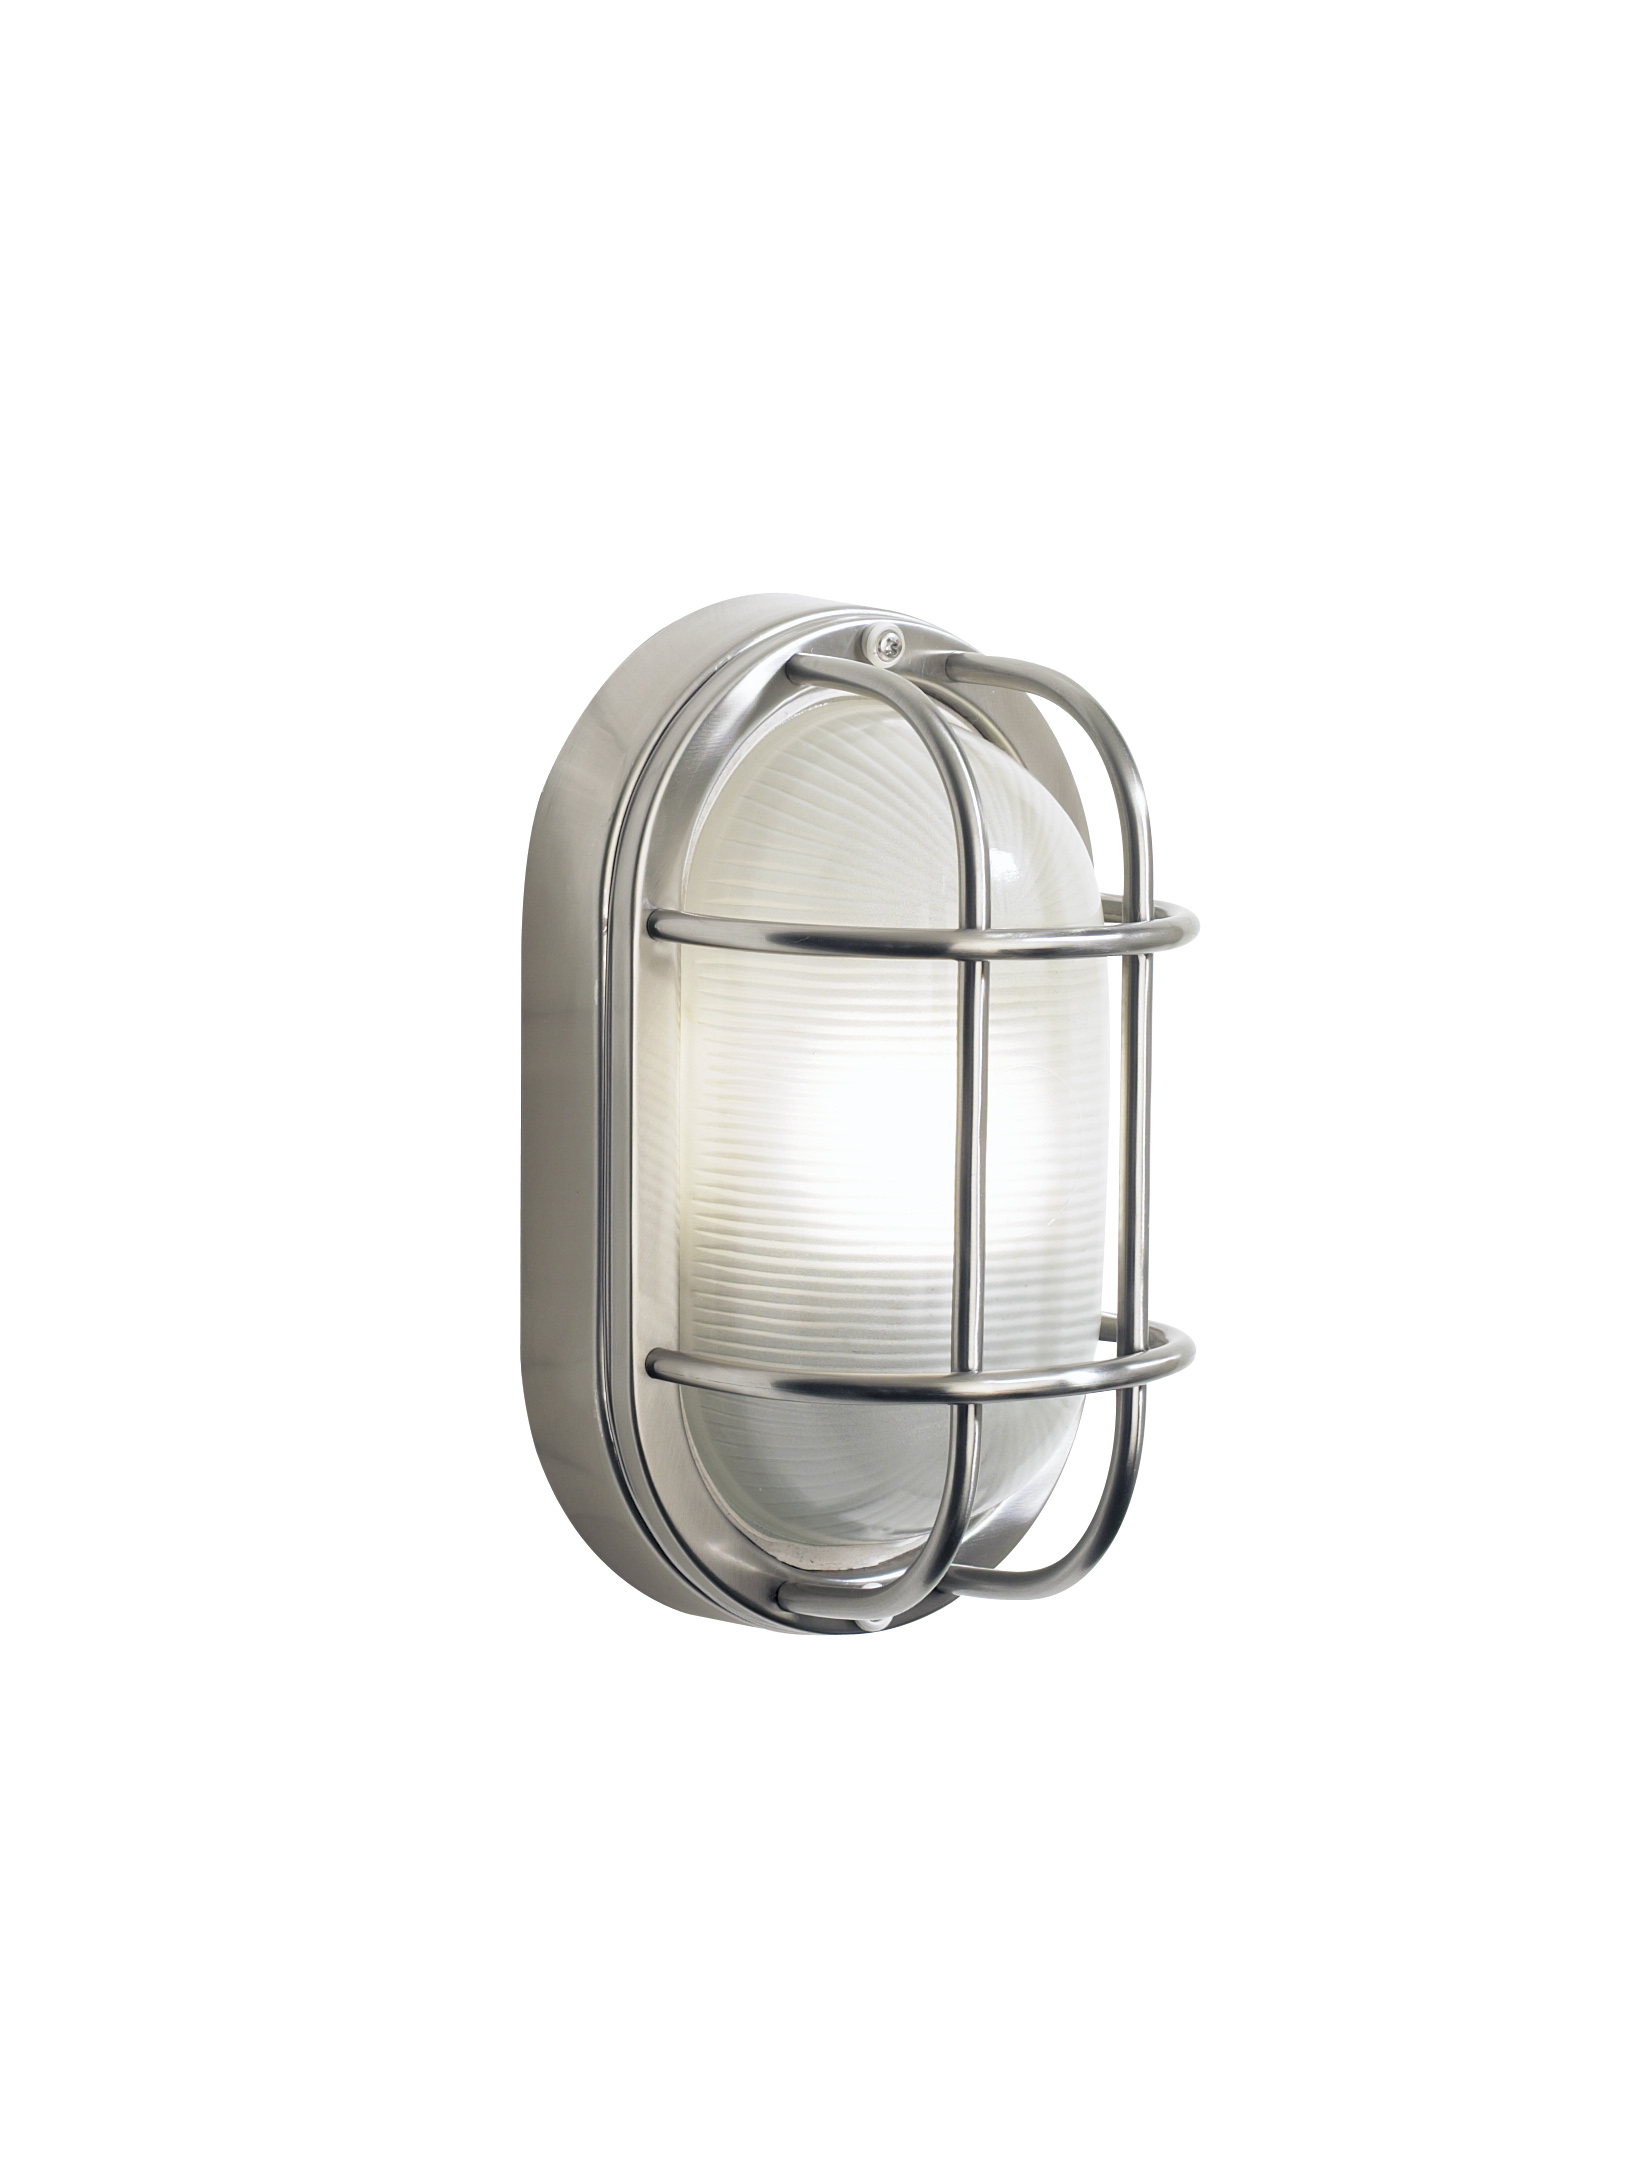 Fitting Outside Wall Lights : Durable Outdoor Bulkhead Oval Wall Light Lighting Design